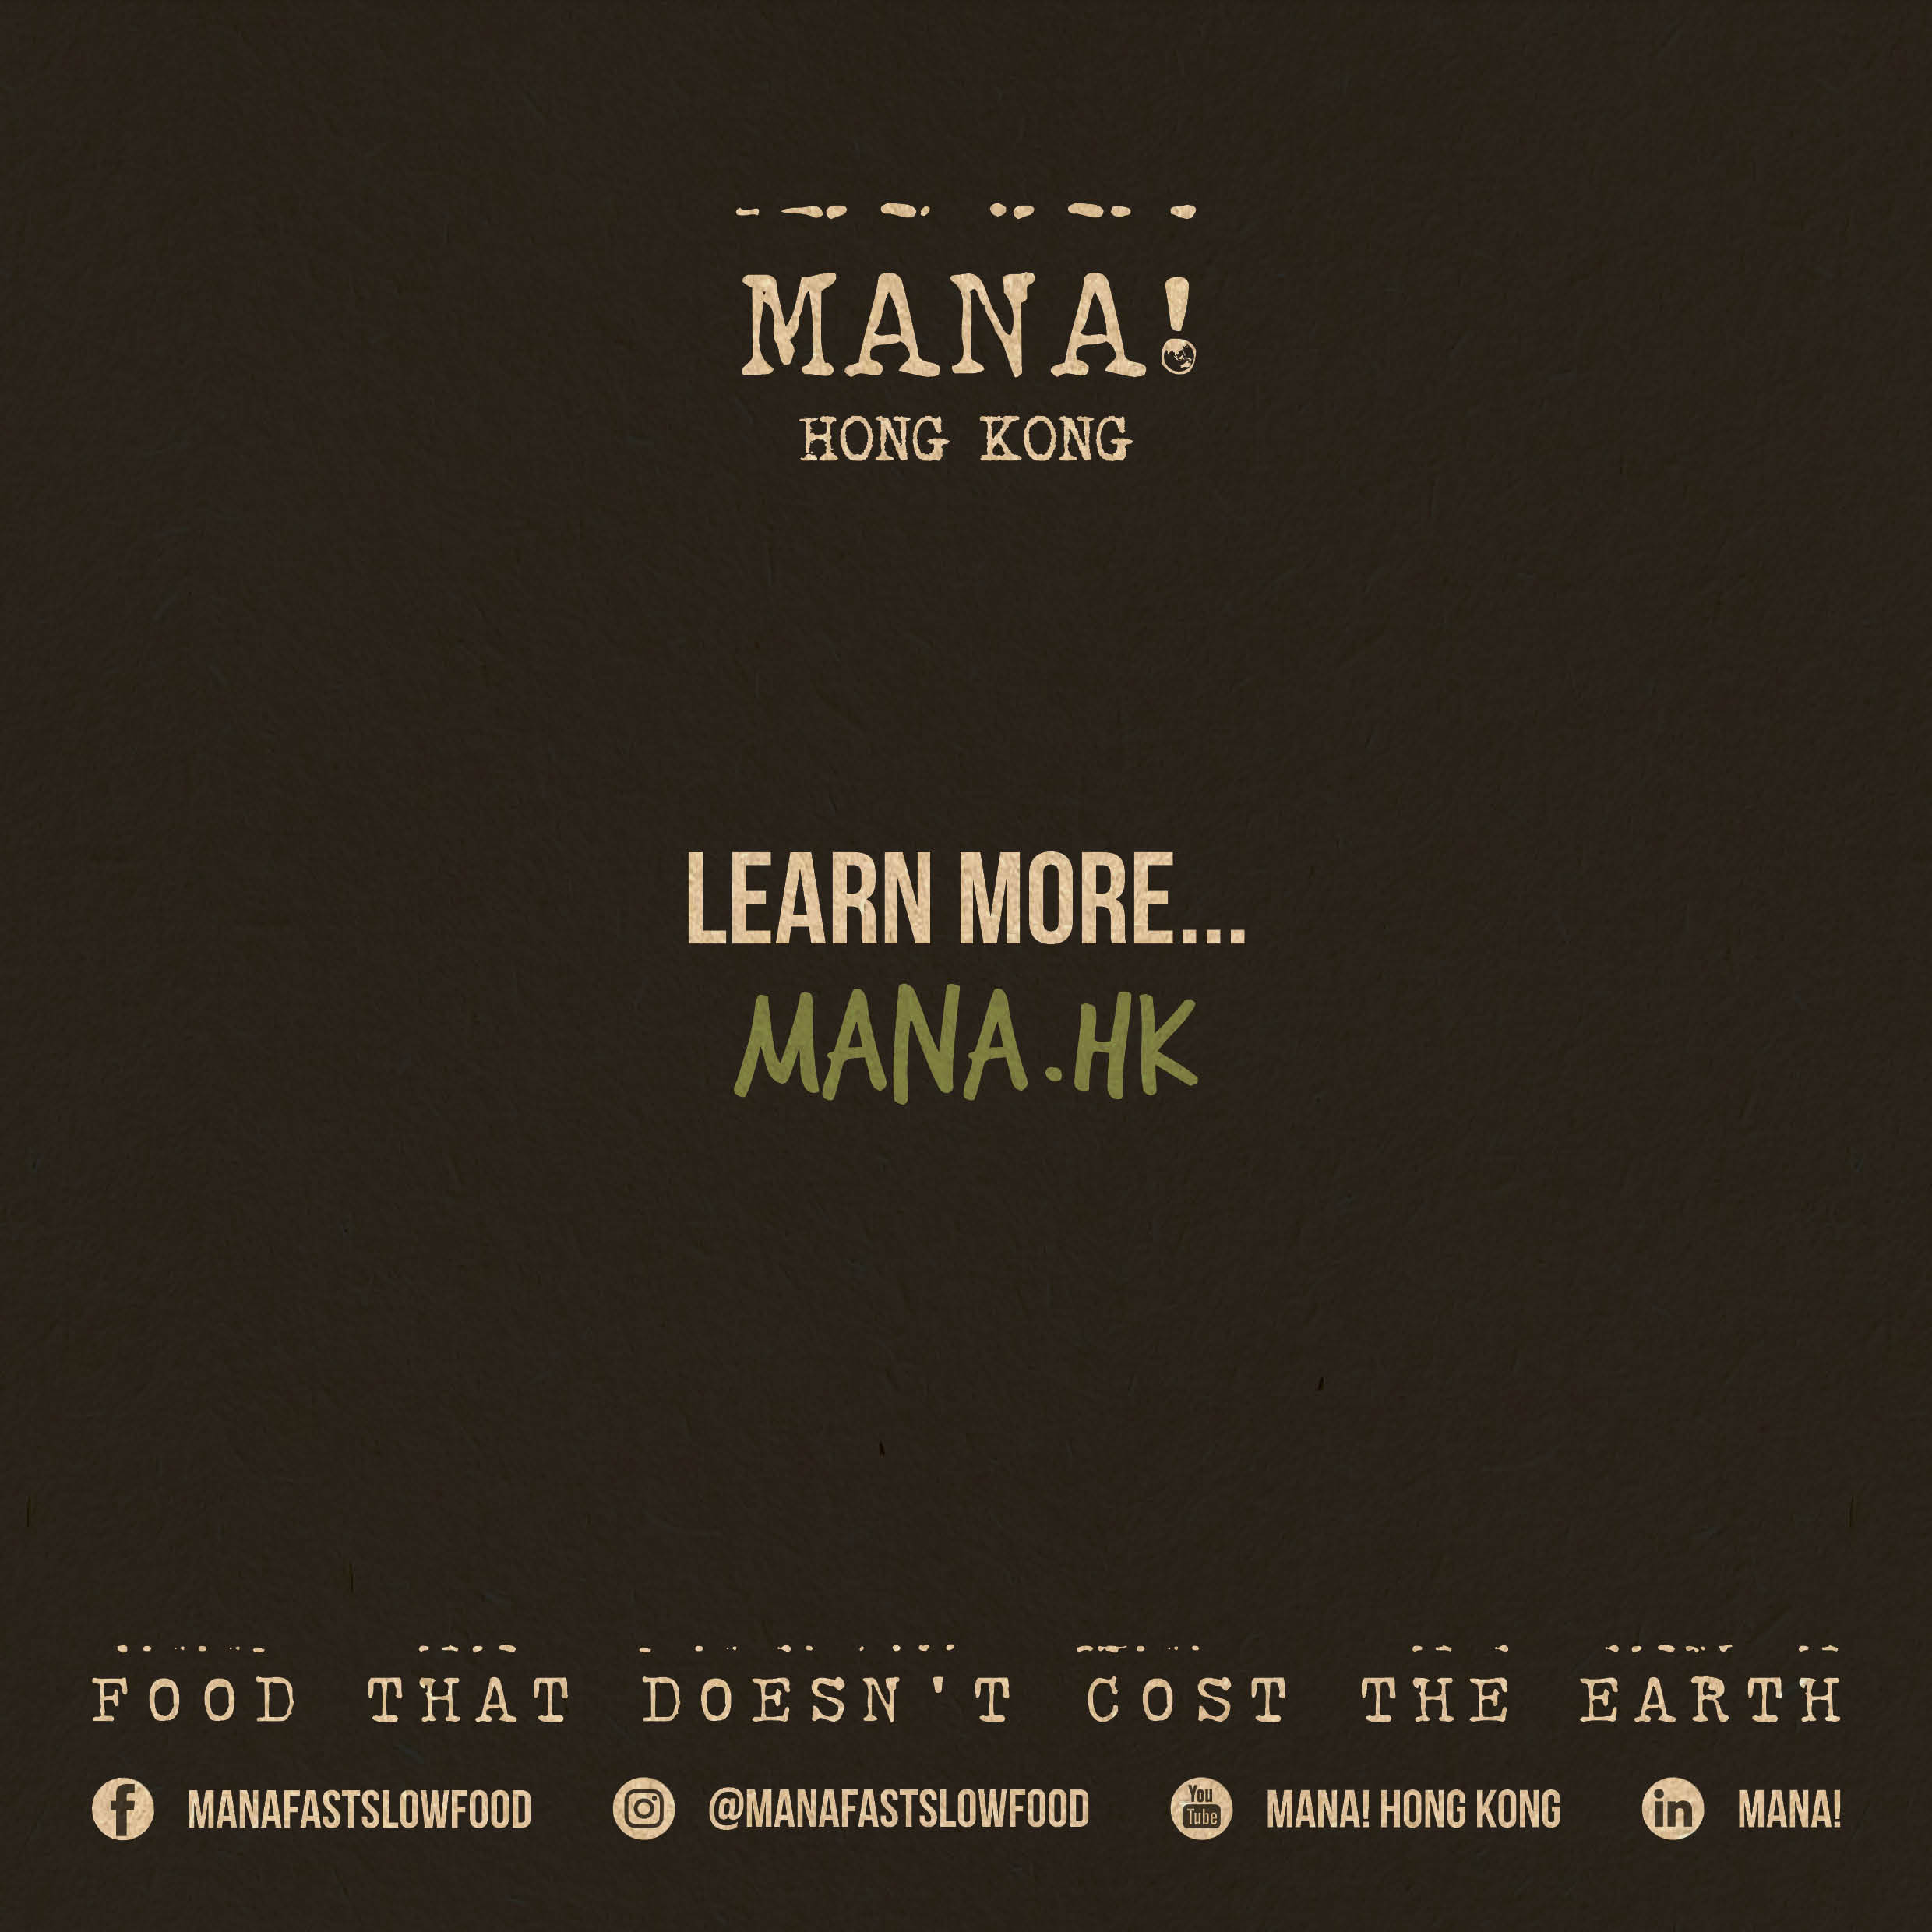 MANA! Sustainability Report 02A - 2019.078.jpg